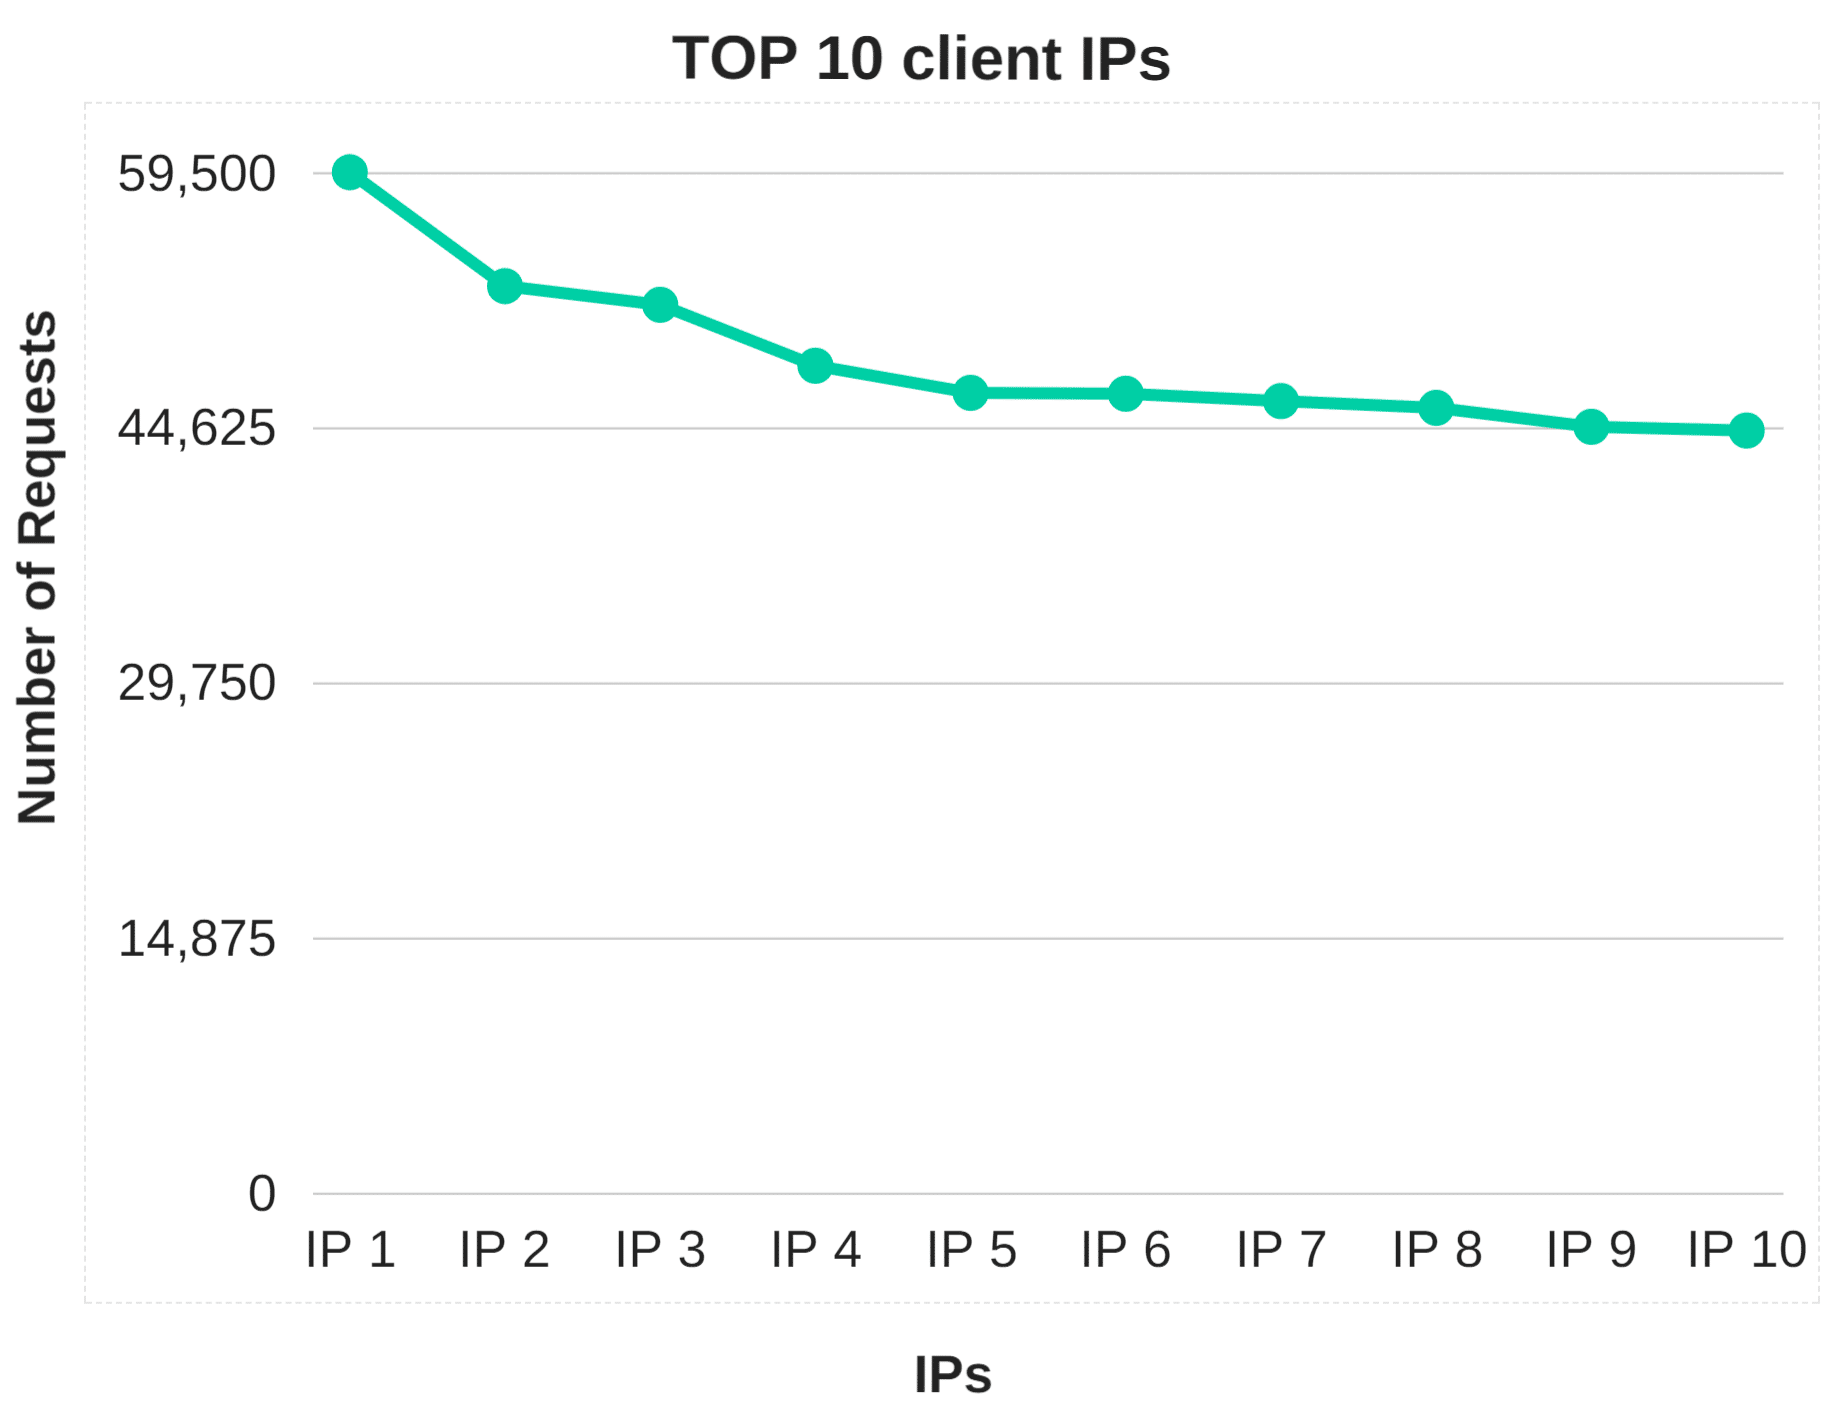 Top 10 client IPs